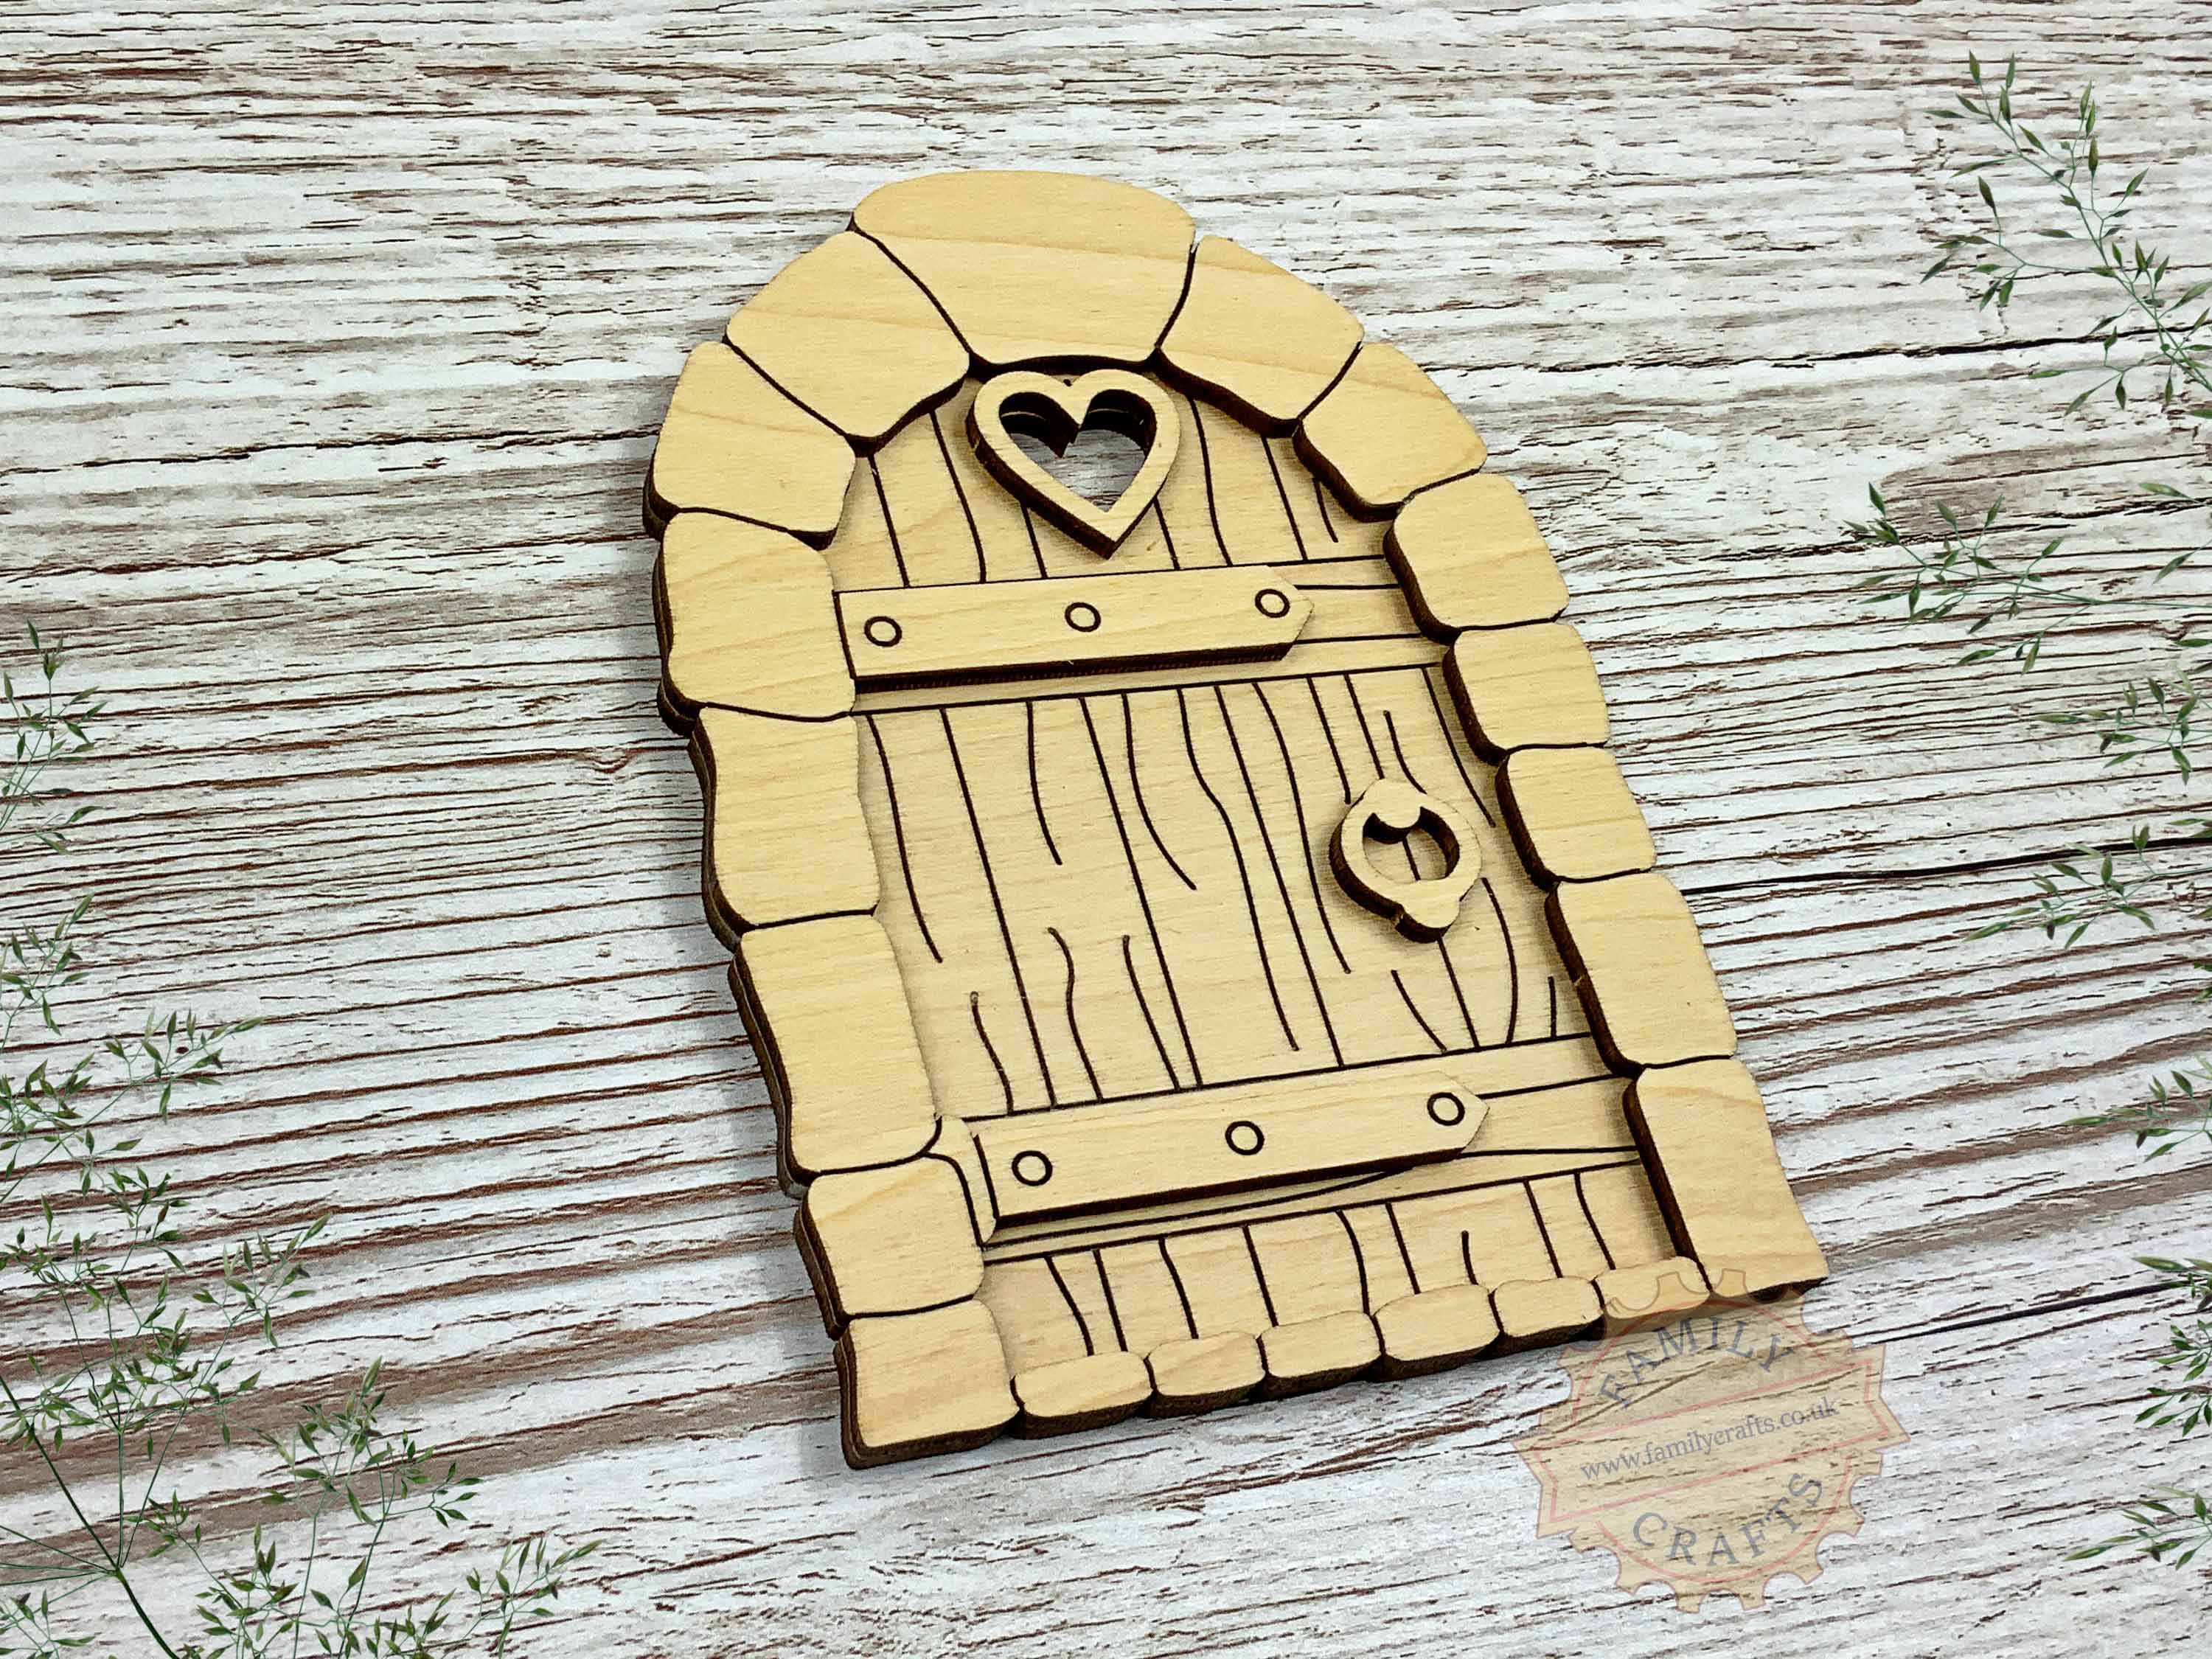 plywood cobblestone fairy door kit with woodgrain view left